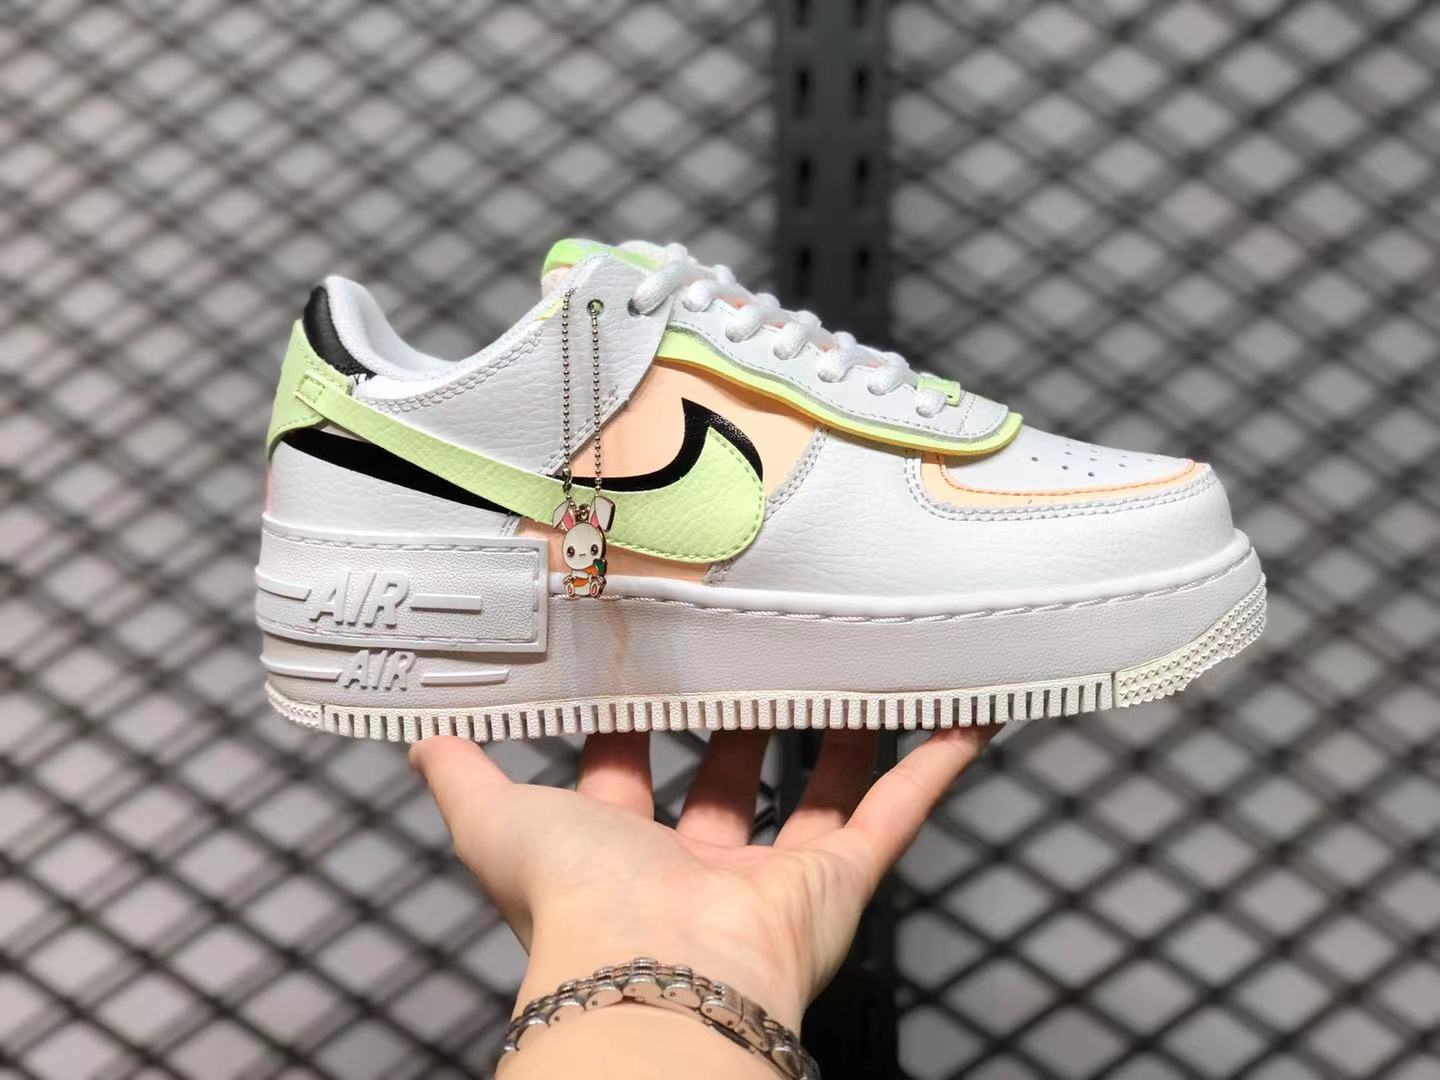 Nike Air Force 1 Shadow Summit White Barely Volt Crimson Tint CI0919-107 To Buy